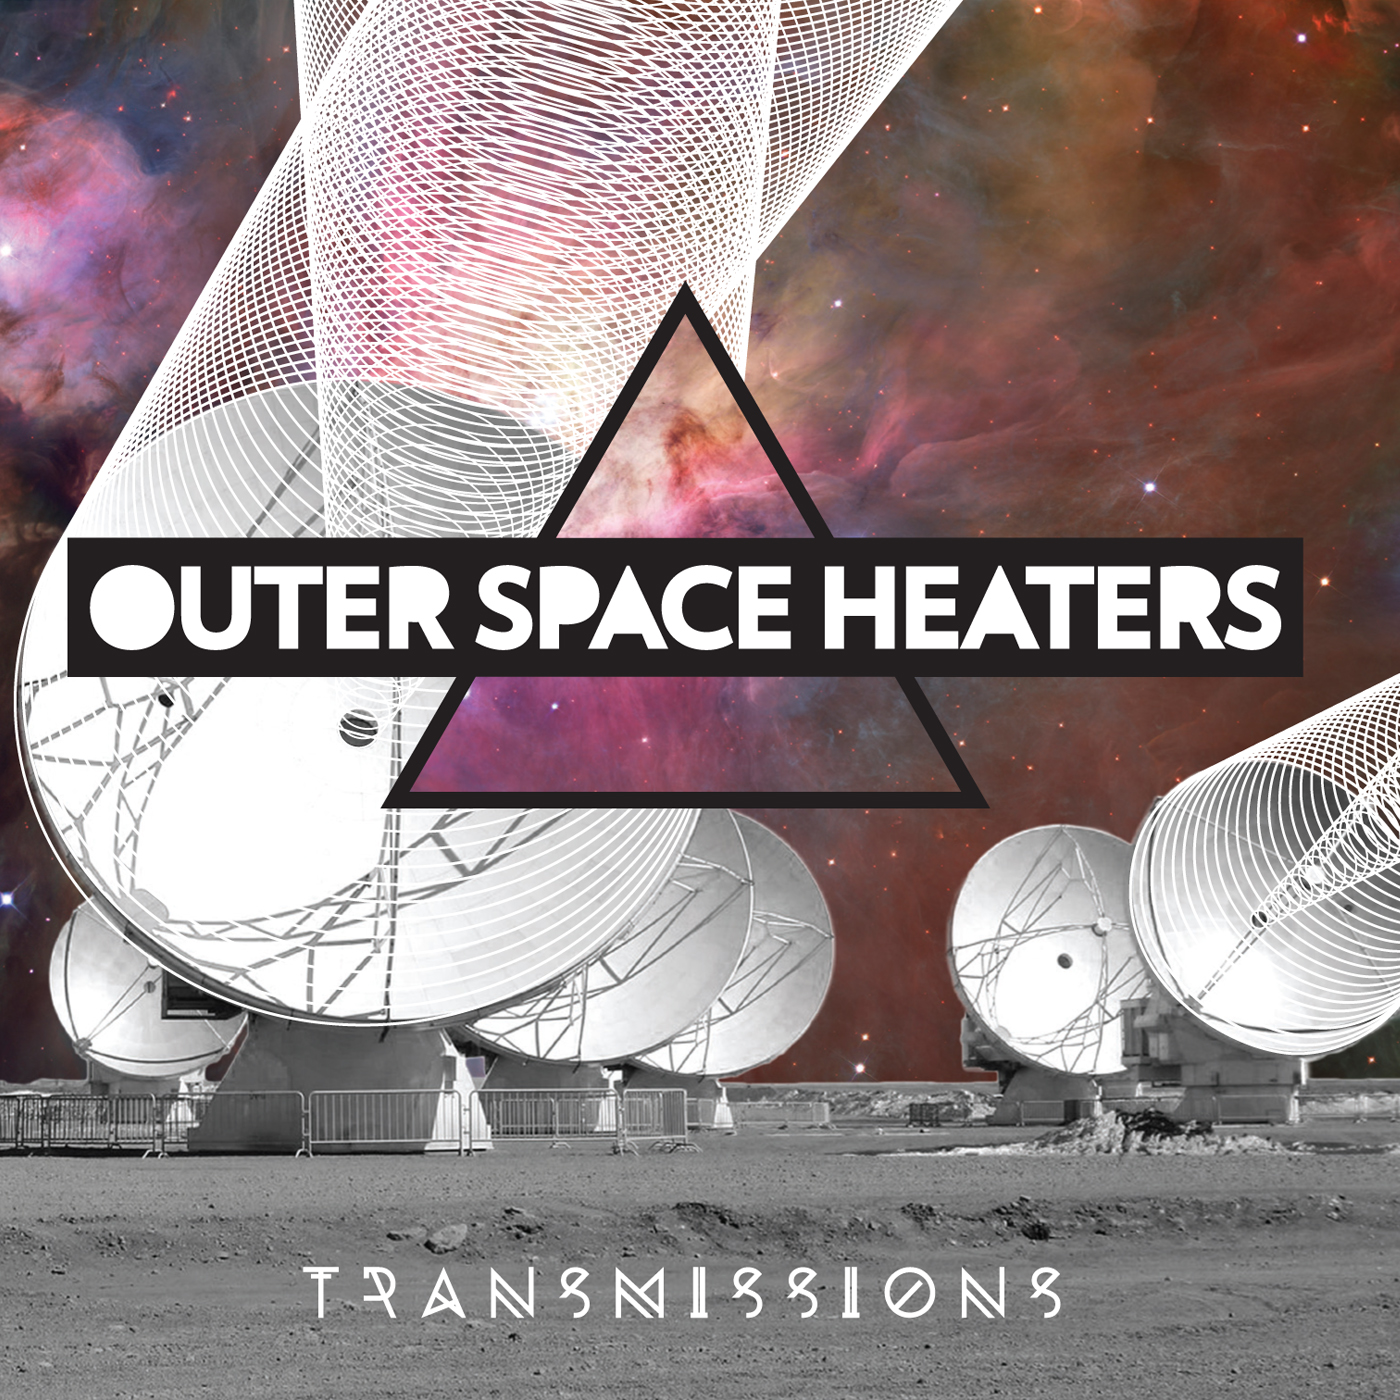 Outer space heaters desolate surf for Outer space studios